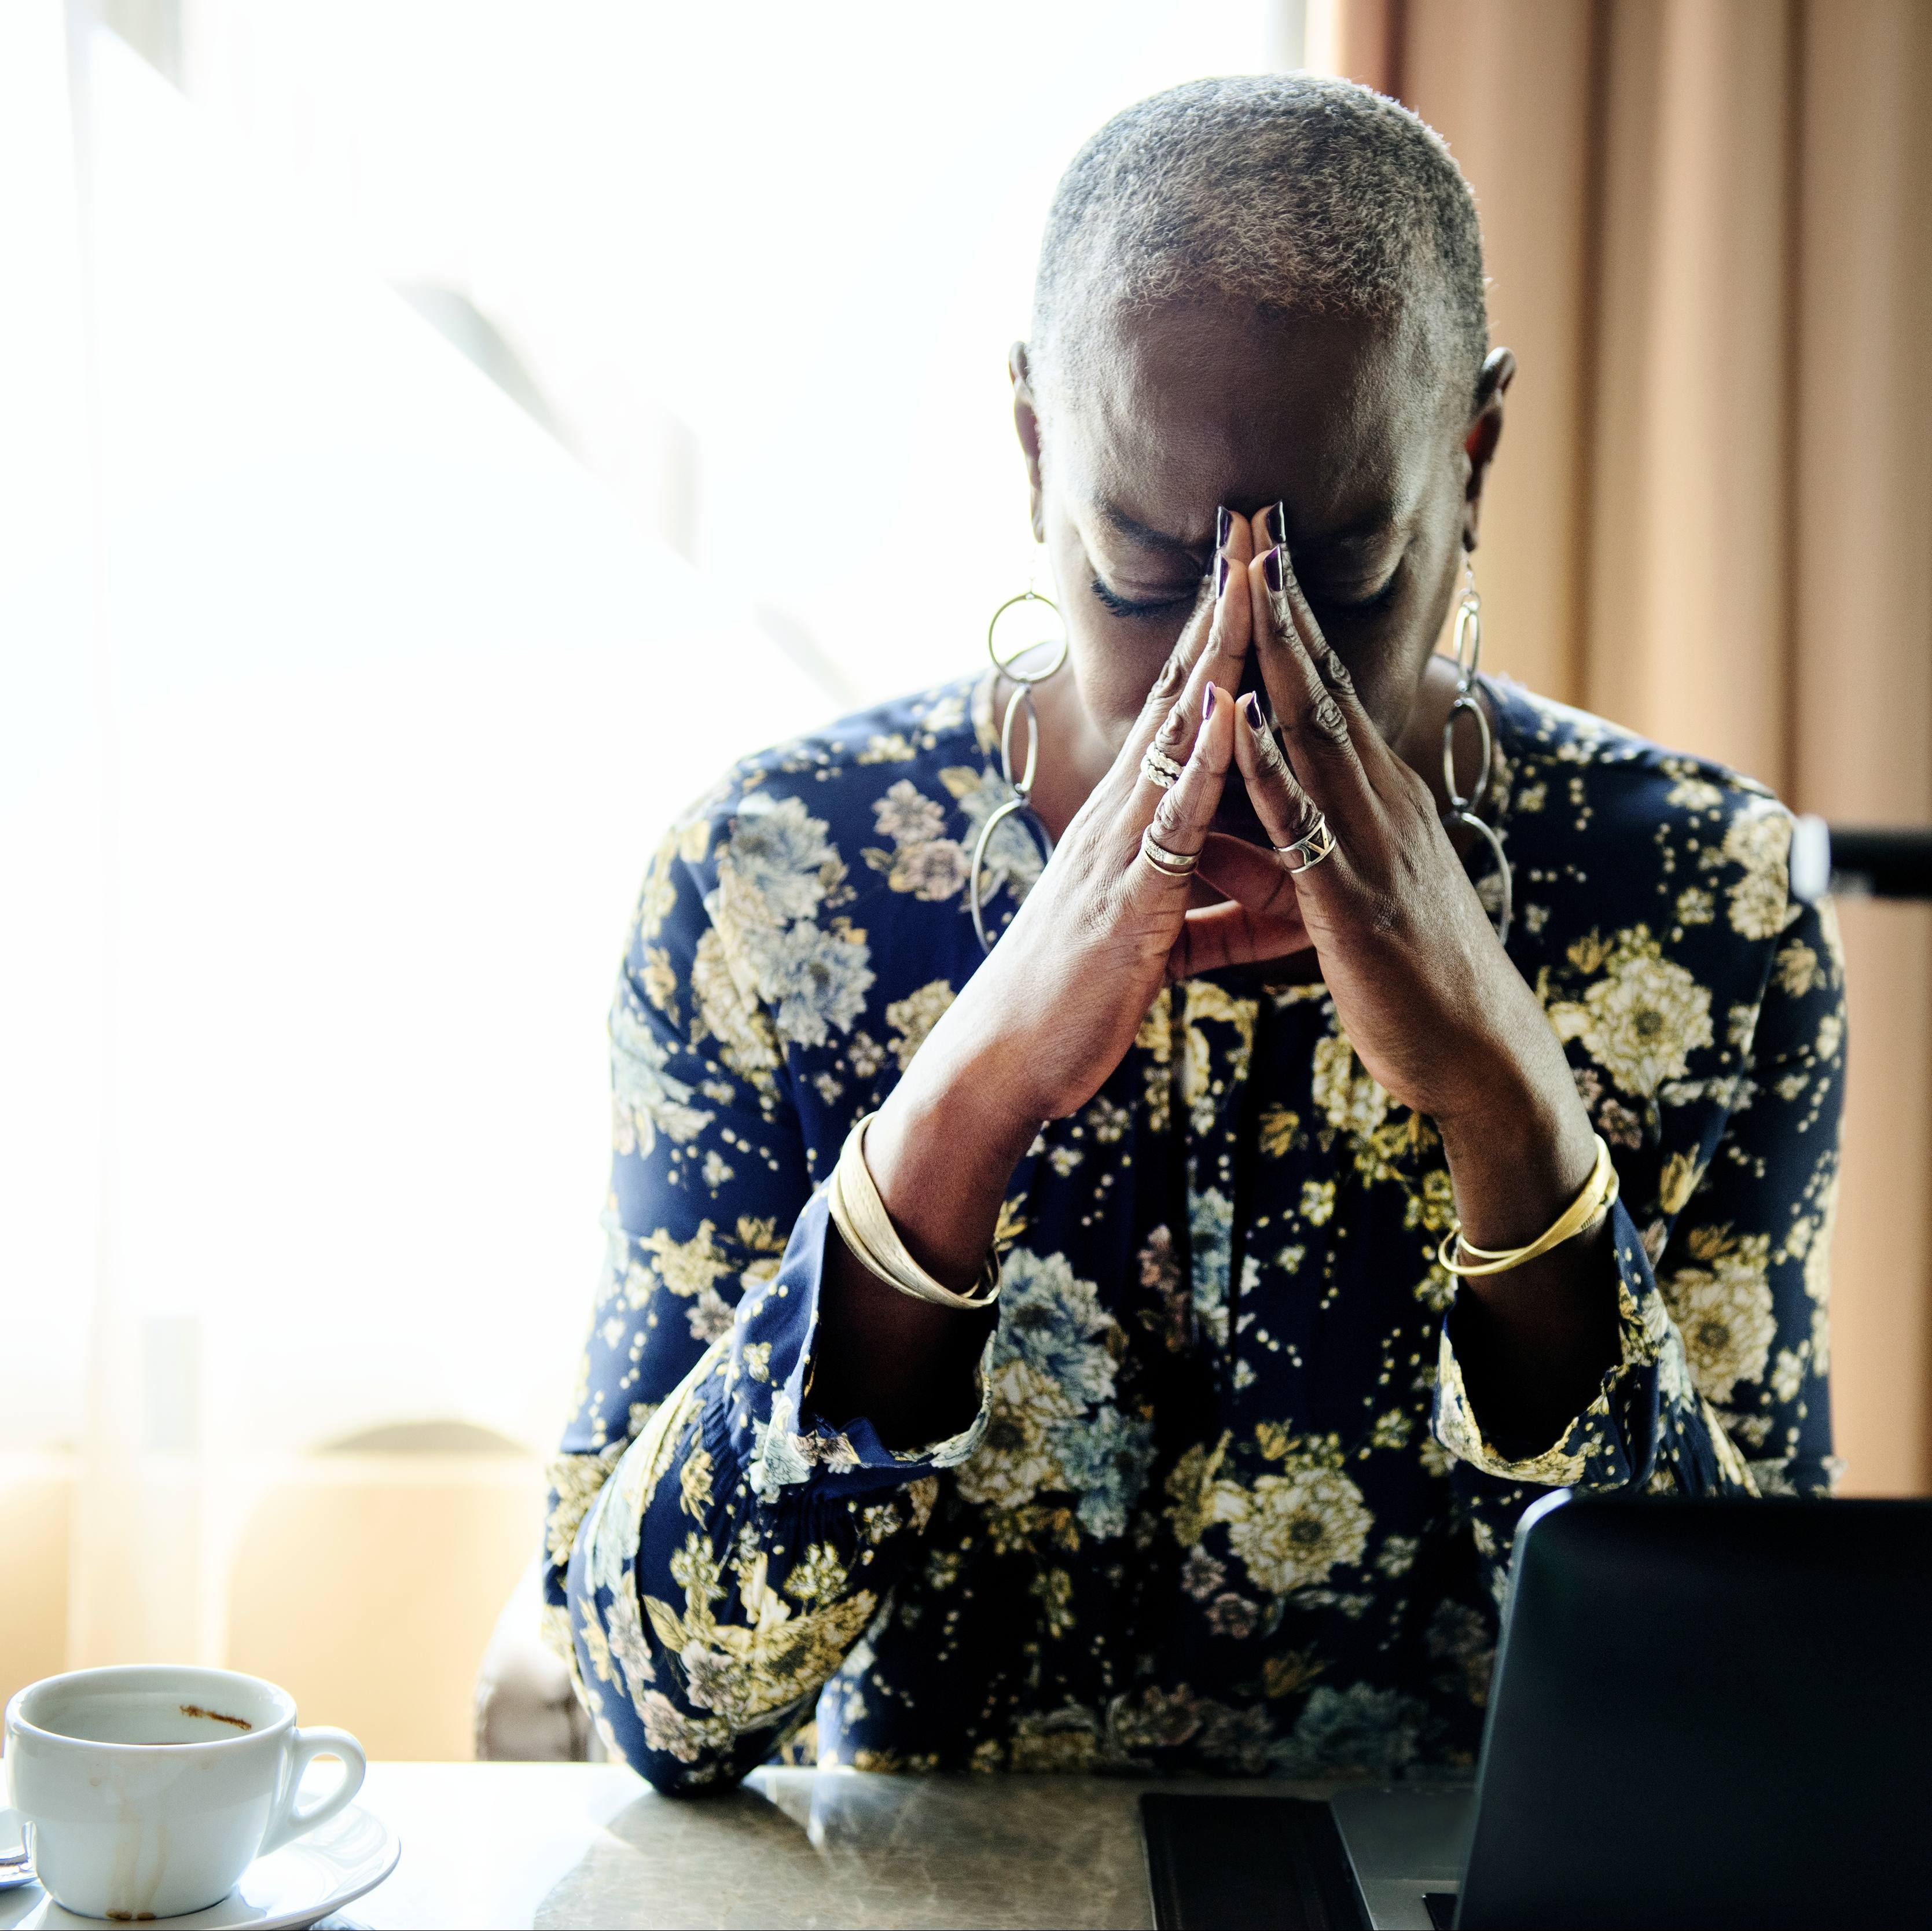 an African American woman sitting at a desk near a window with the light coming in and resting her head on her hands in a prayer-like position, perhaps worried or stressed